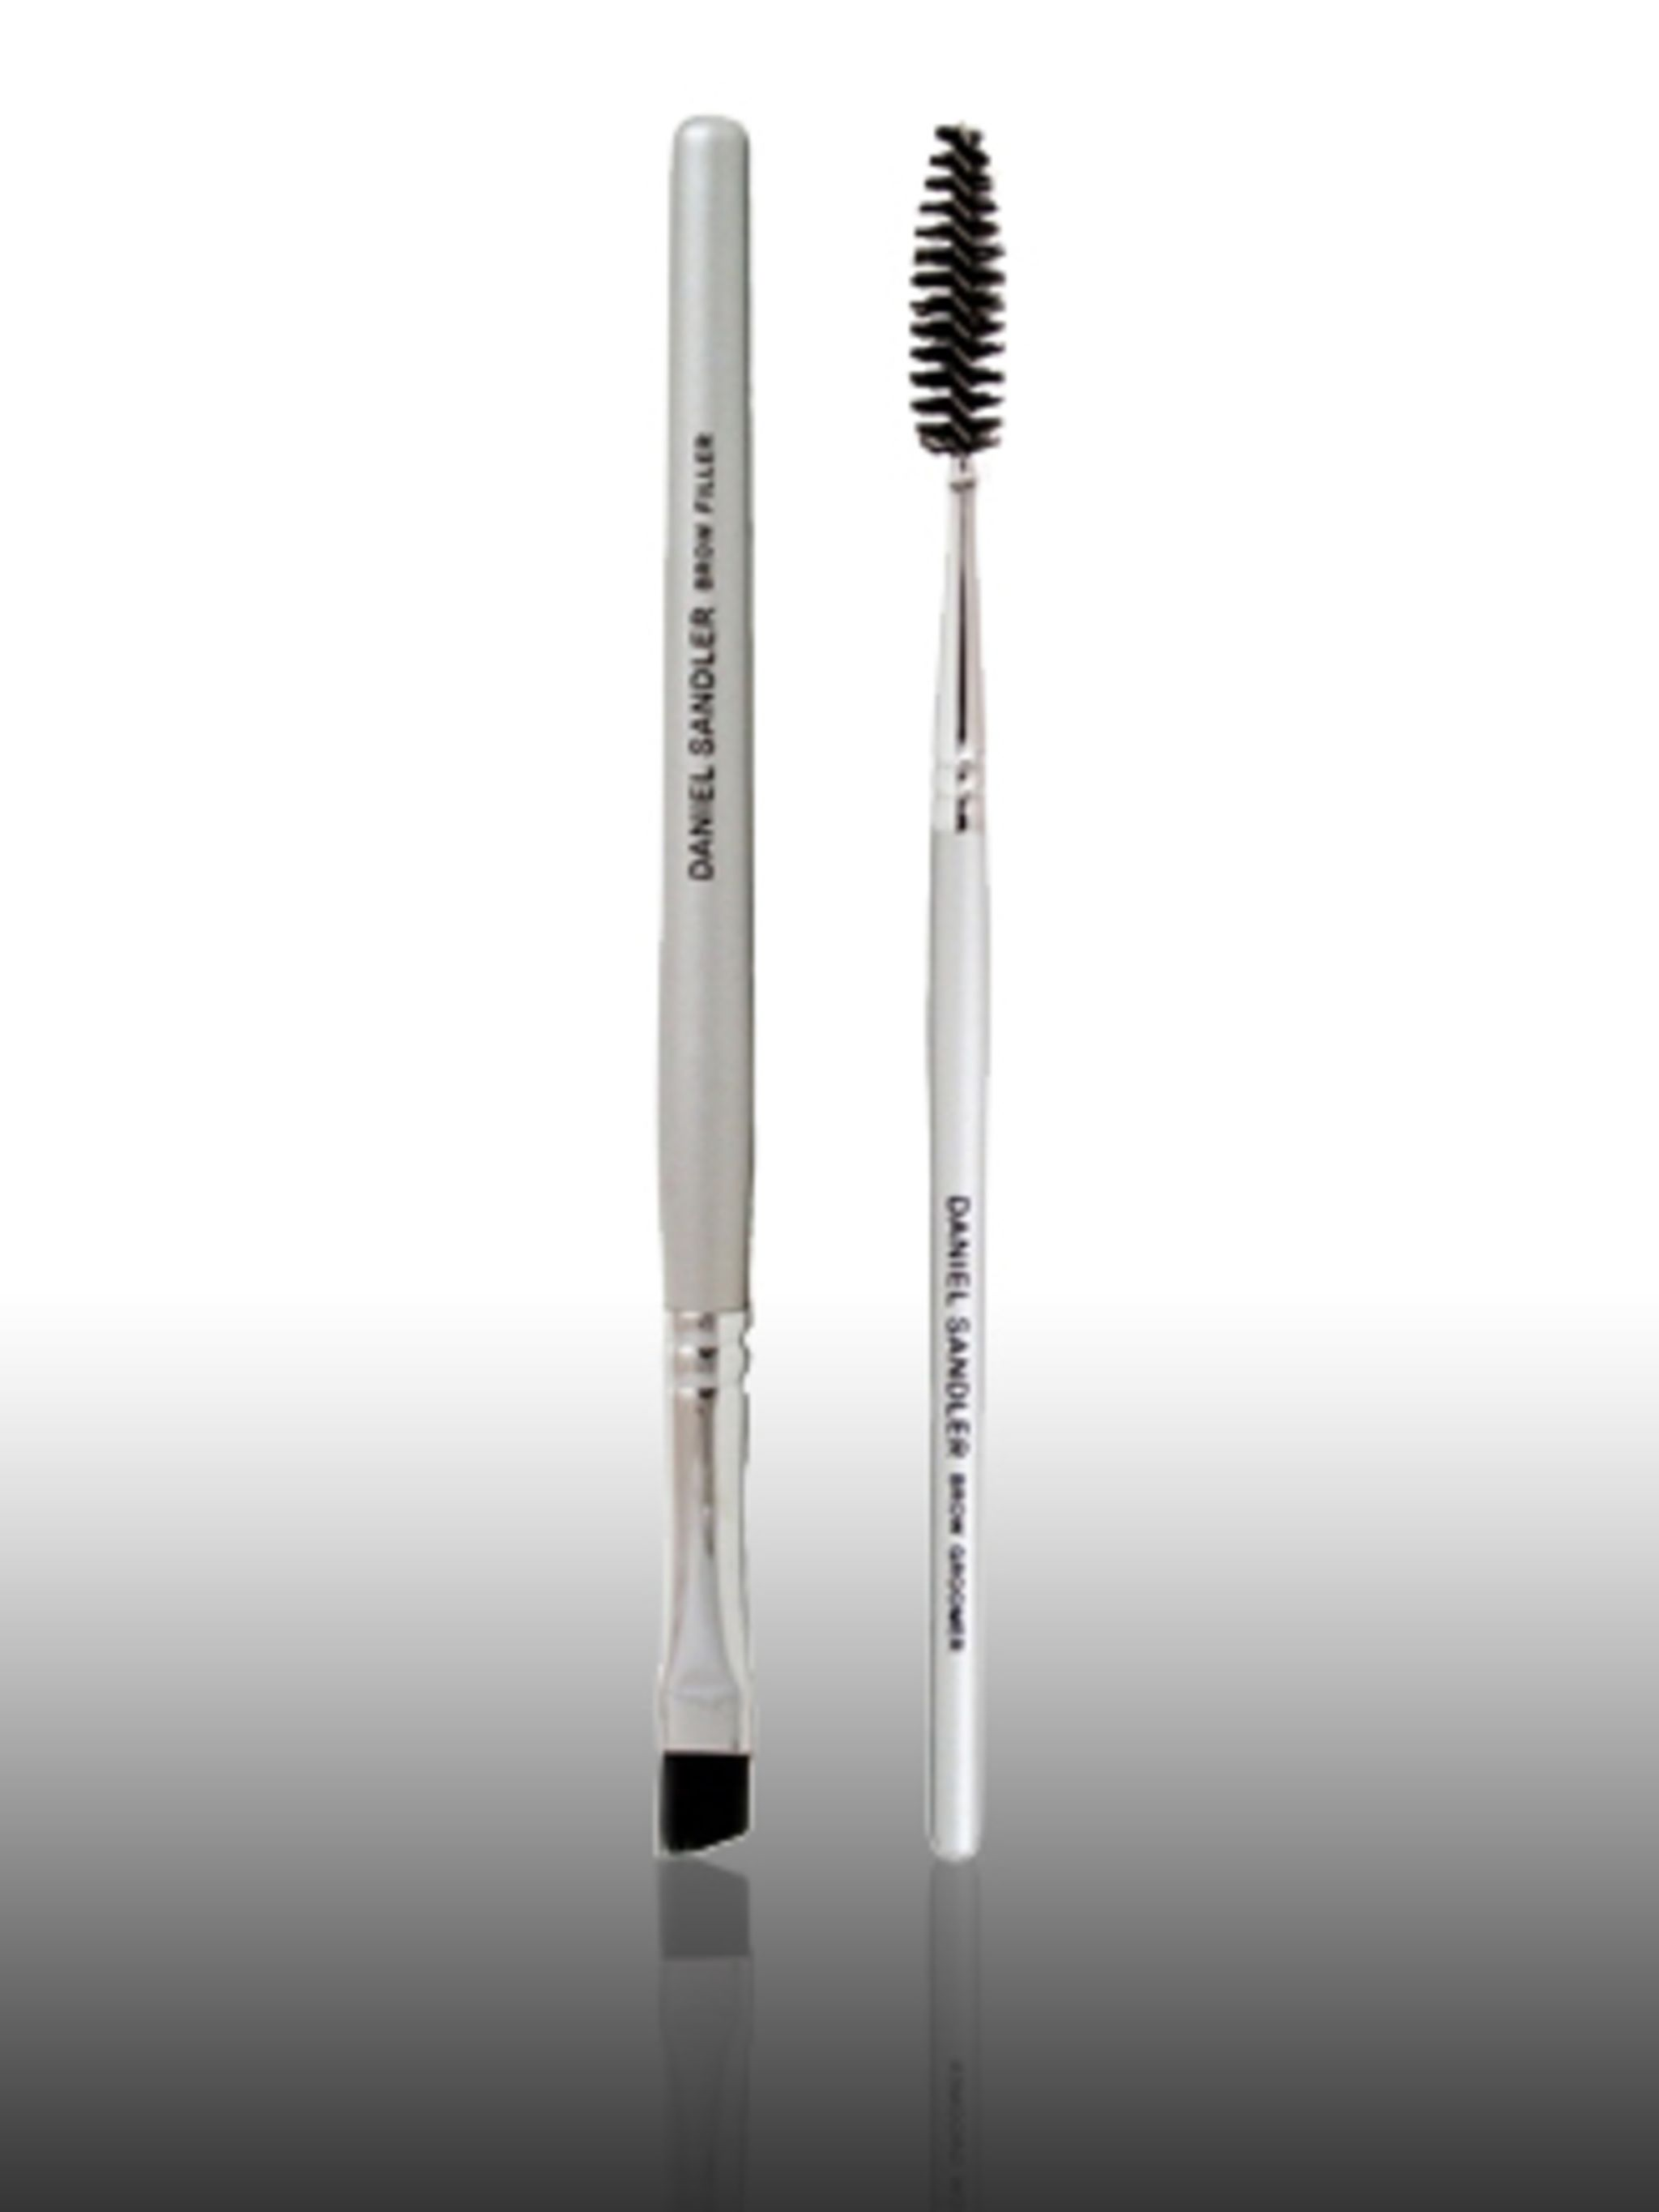 "<p>Brow Filler Brush, £10 by Daniel Sandler at <a href=""http://www.beautique.com/product/Daniel_Sandler/NEW_Daniel_Sandler_Brow_Filler_Brush_%28Handbag_Sized%29.aspx"">Beautique</a> </p><p>Celebrity make-up artist, Daniel Sandler says: 'Fill in your brows"